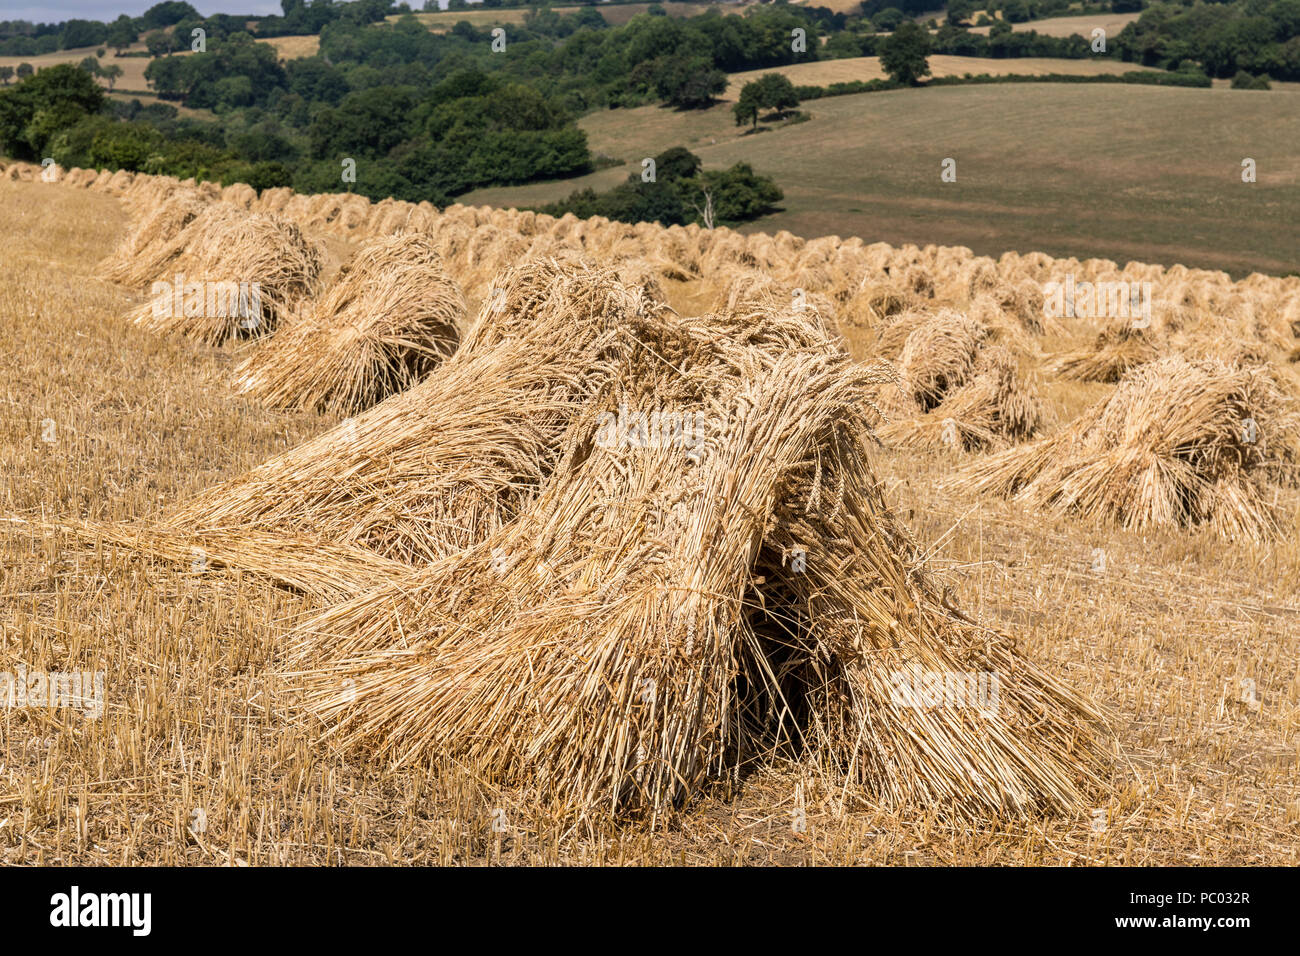 A field of stooks nr Colerne, Wiltshire, England - Stock Image